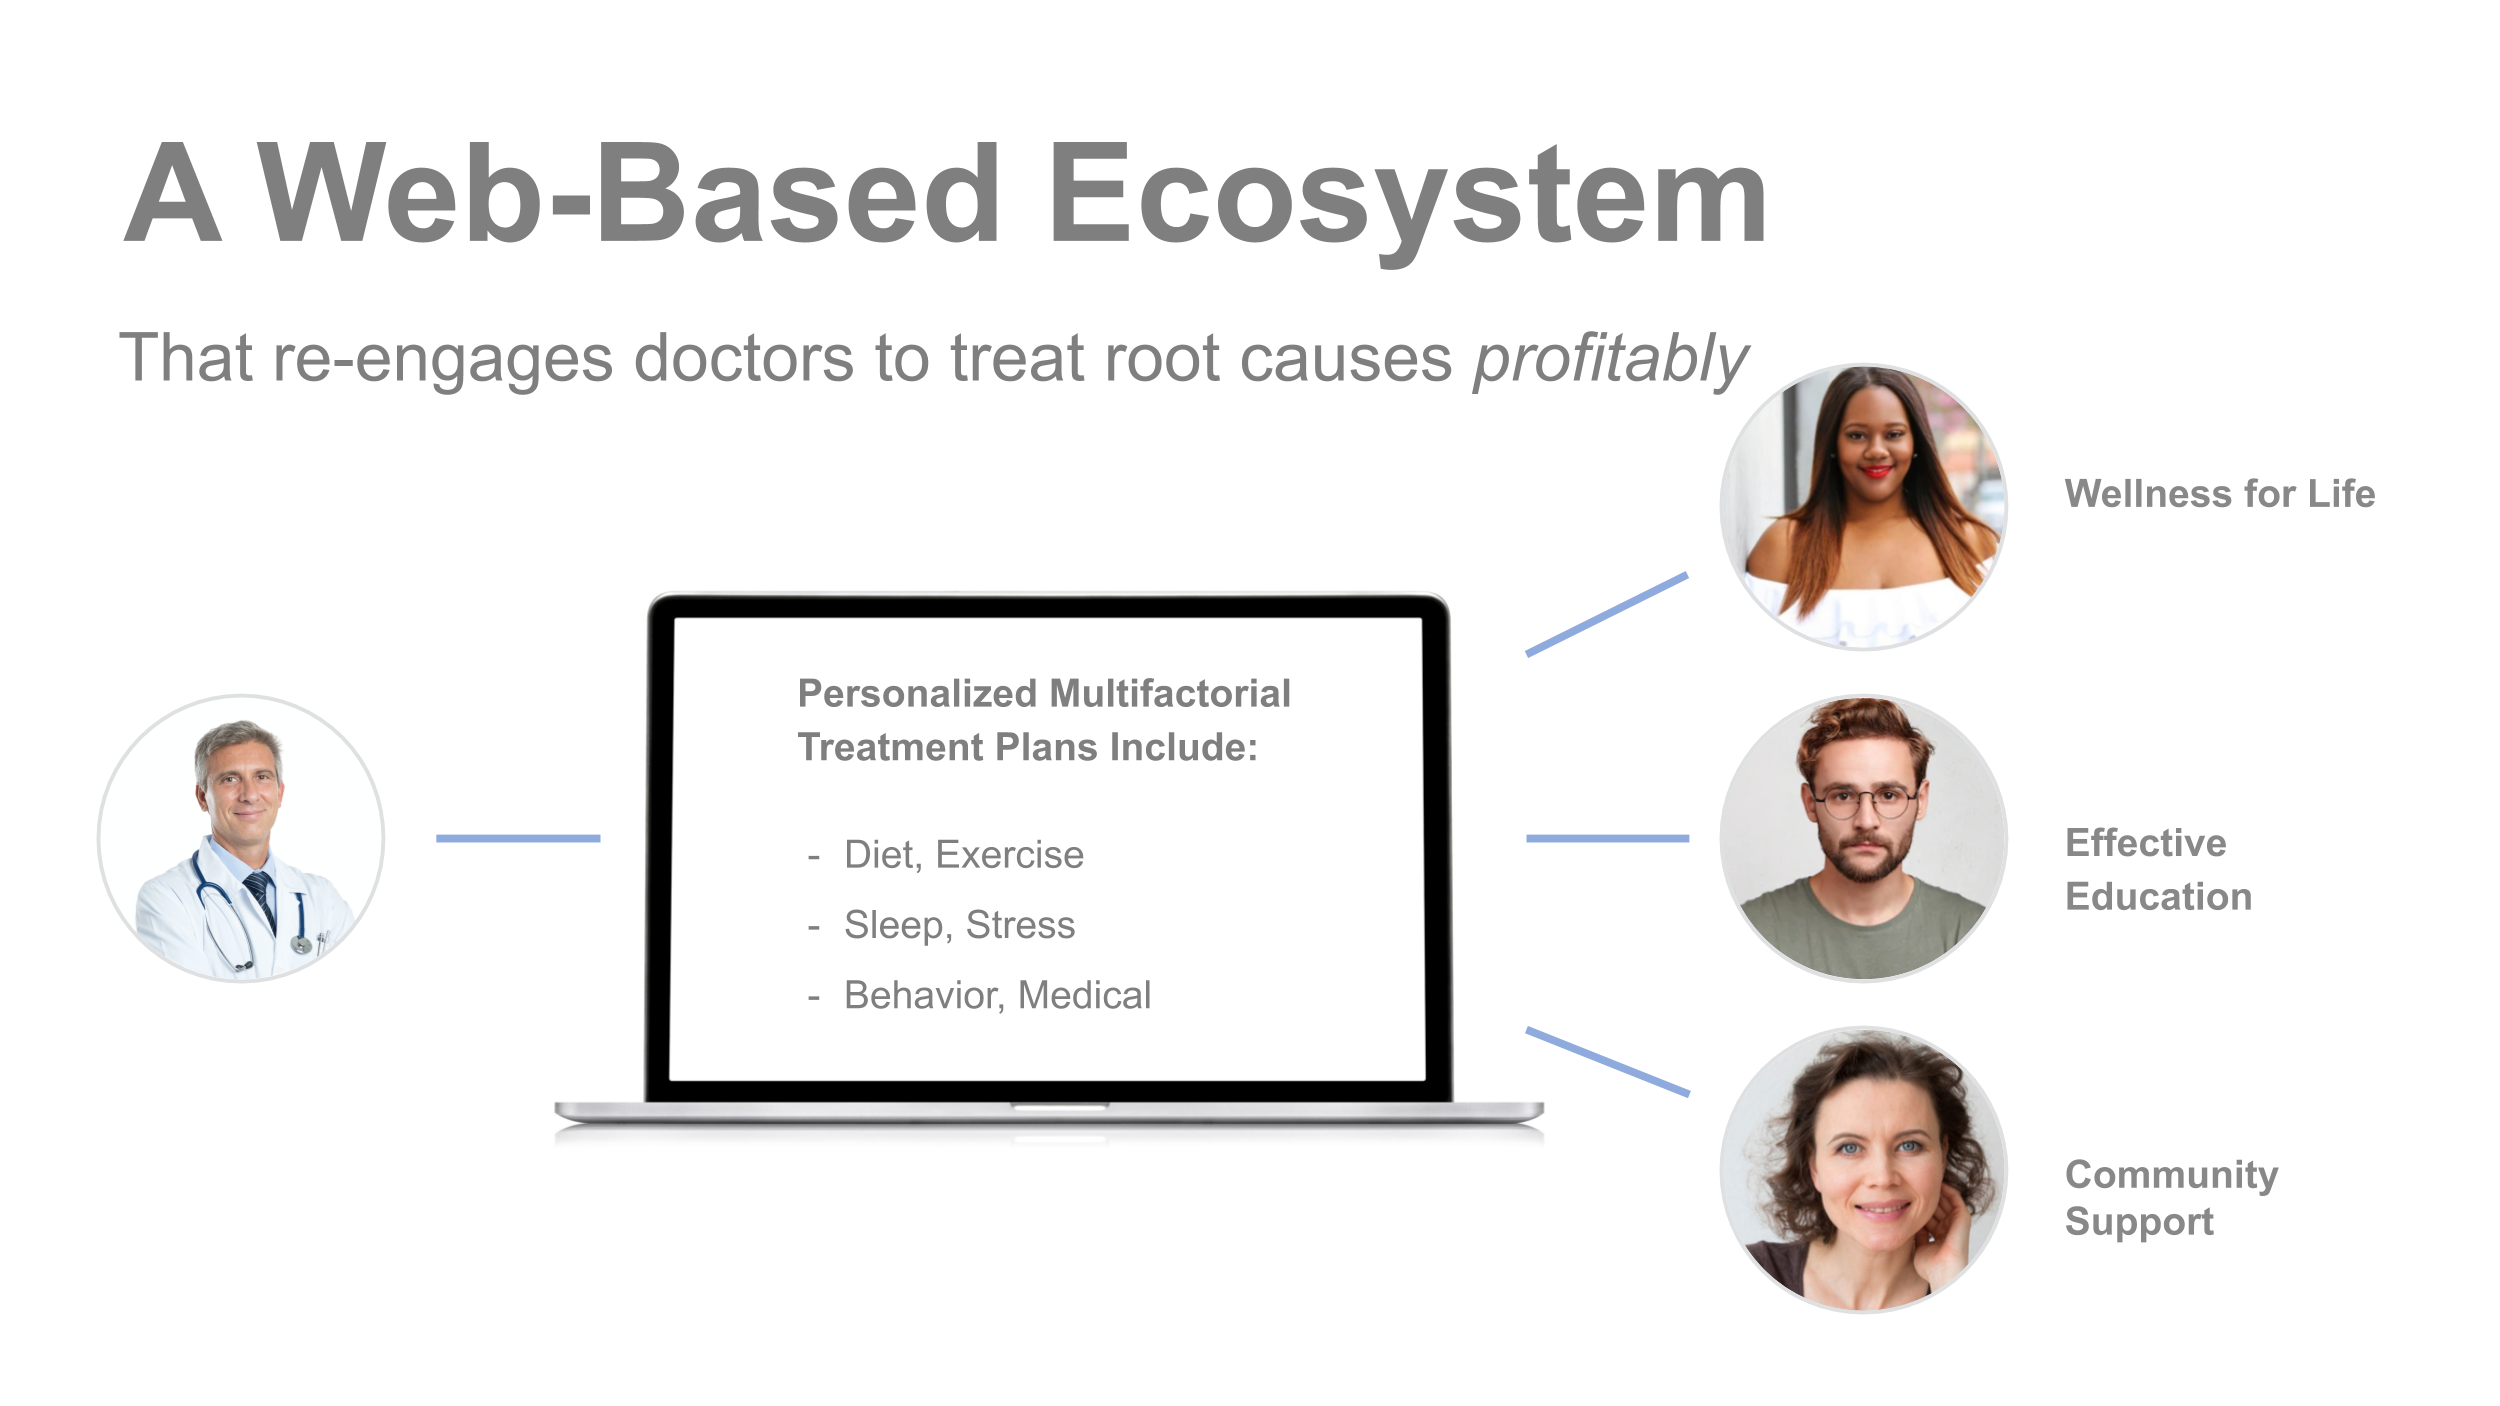 Vavici brings business model innovation into the doctor's office with curated education, tools, products and services for wellness.